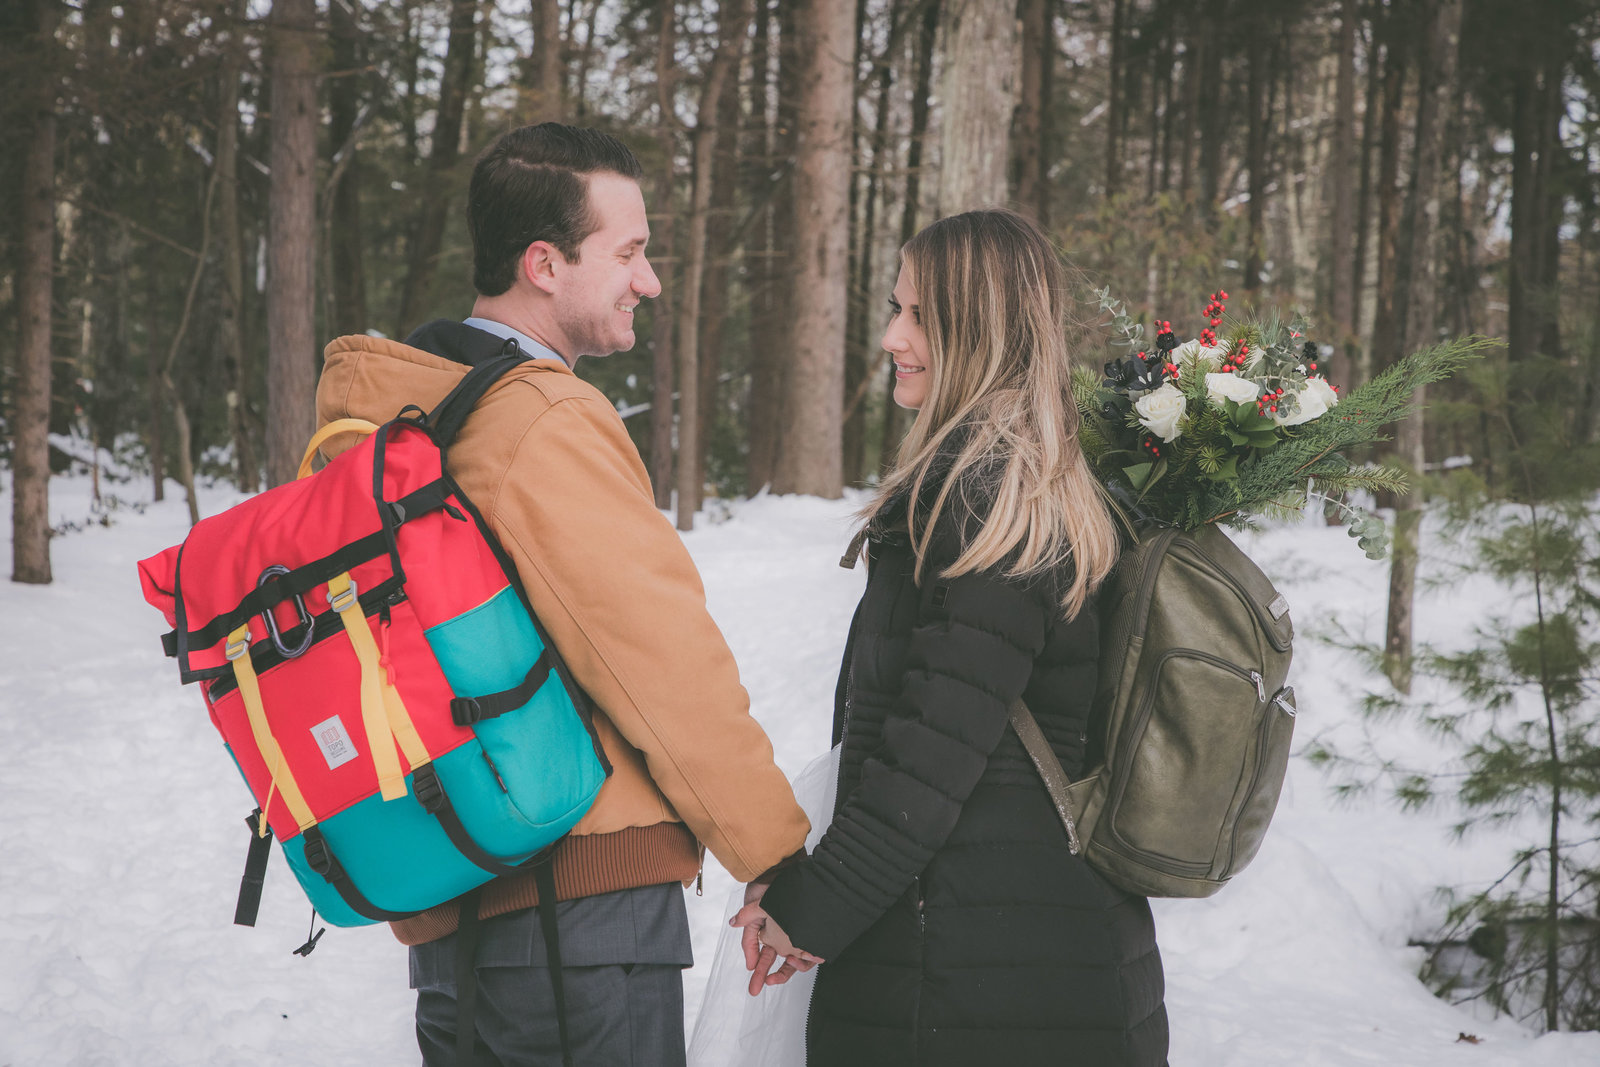 A couple looks at each other and smiles during their hiking elopement.